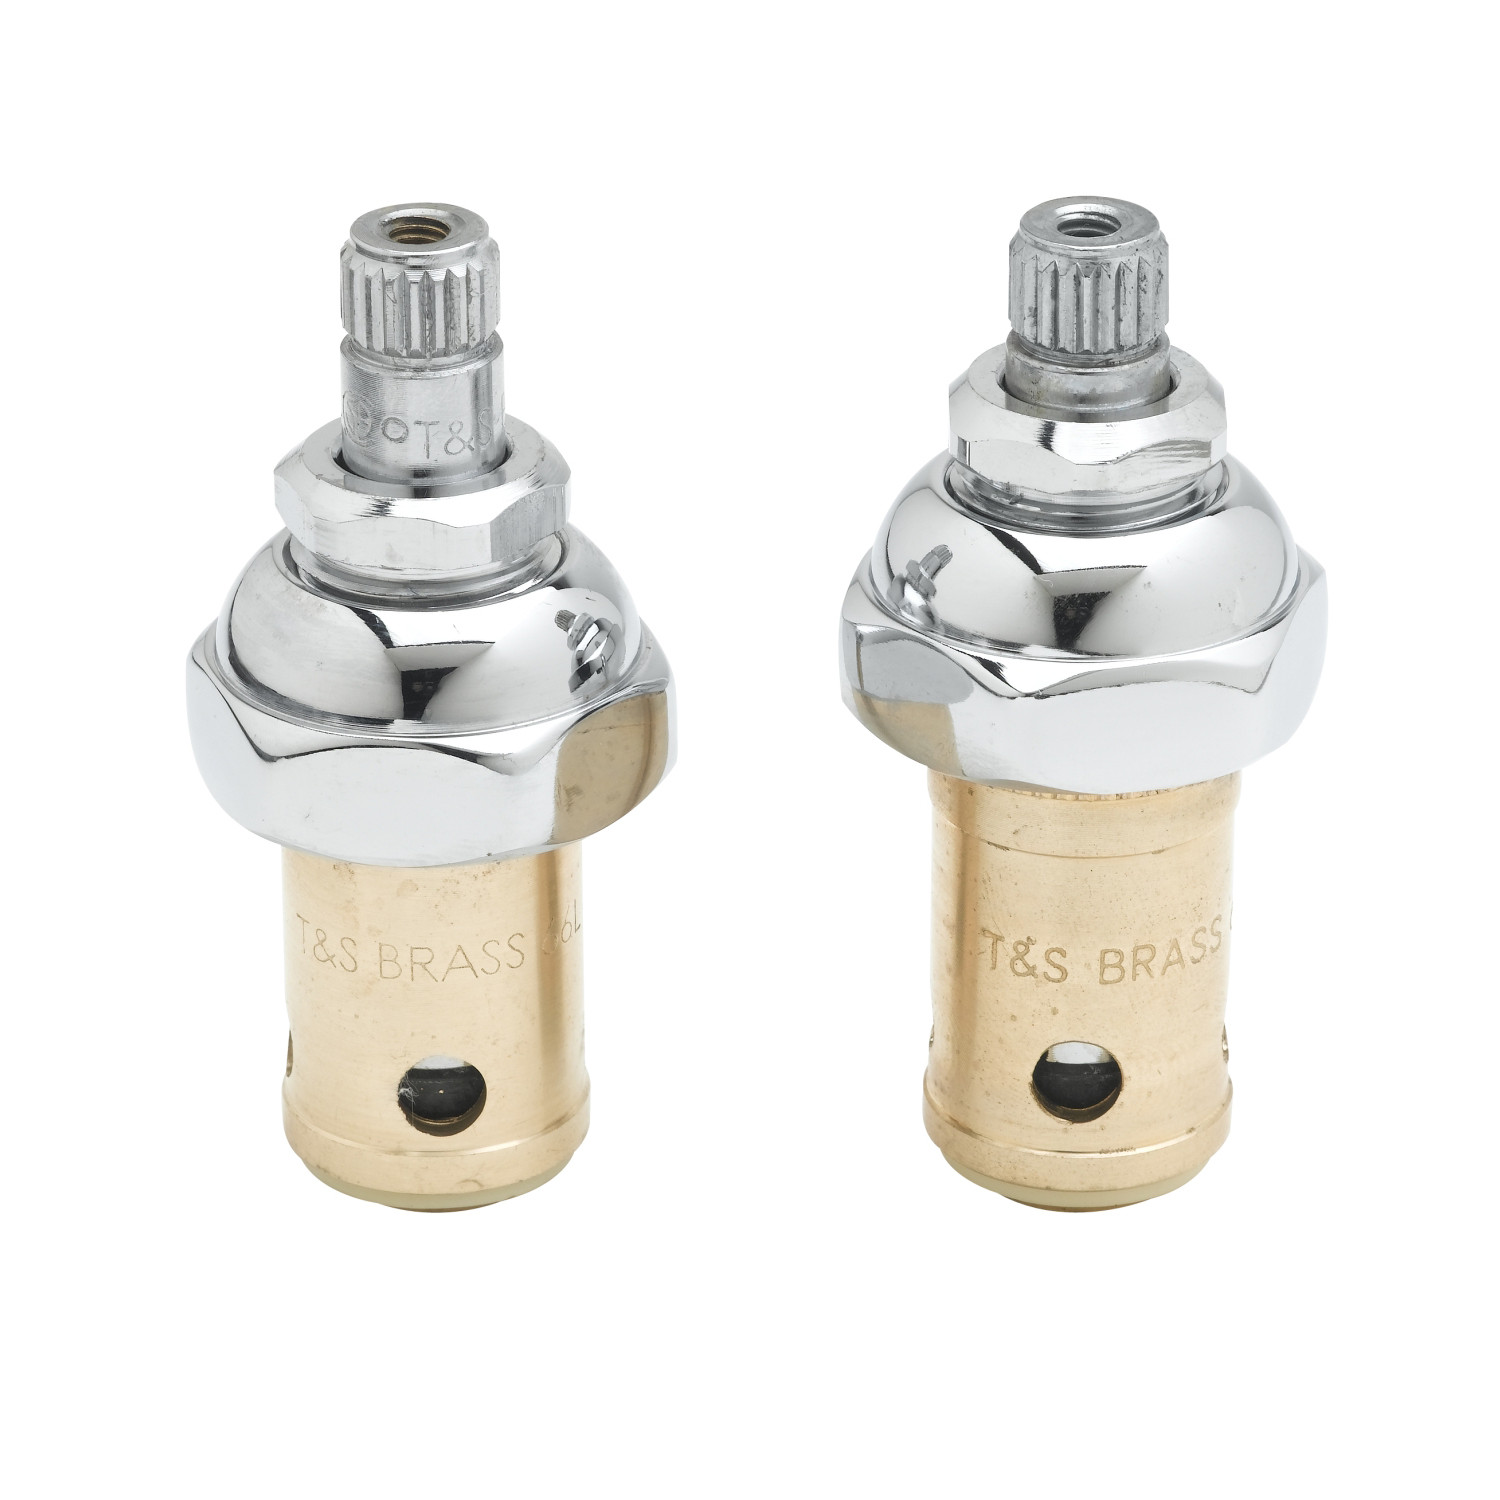 mixing deck cartridges with plated mount body brass tamps polished manual chrome beautiful s single t faucet new equip faucets hole different of types